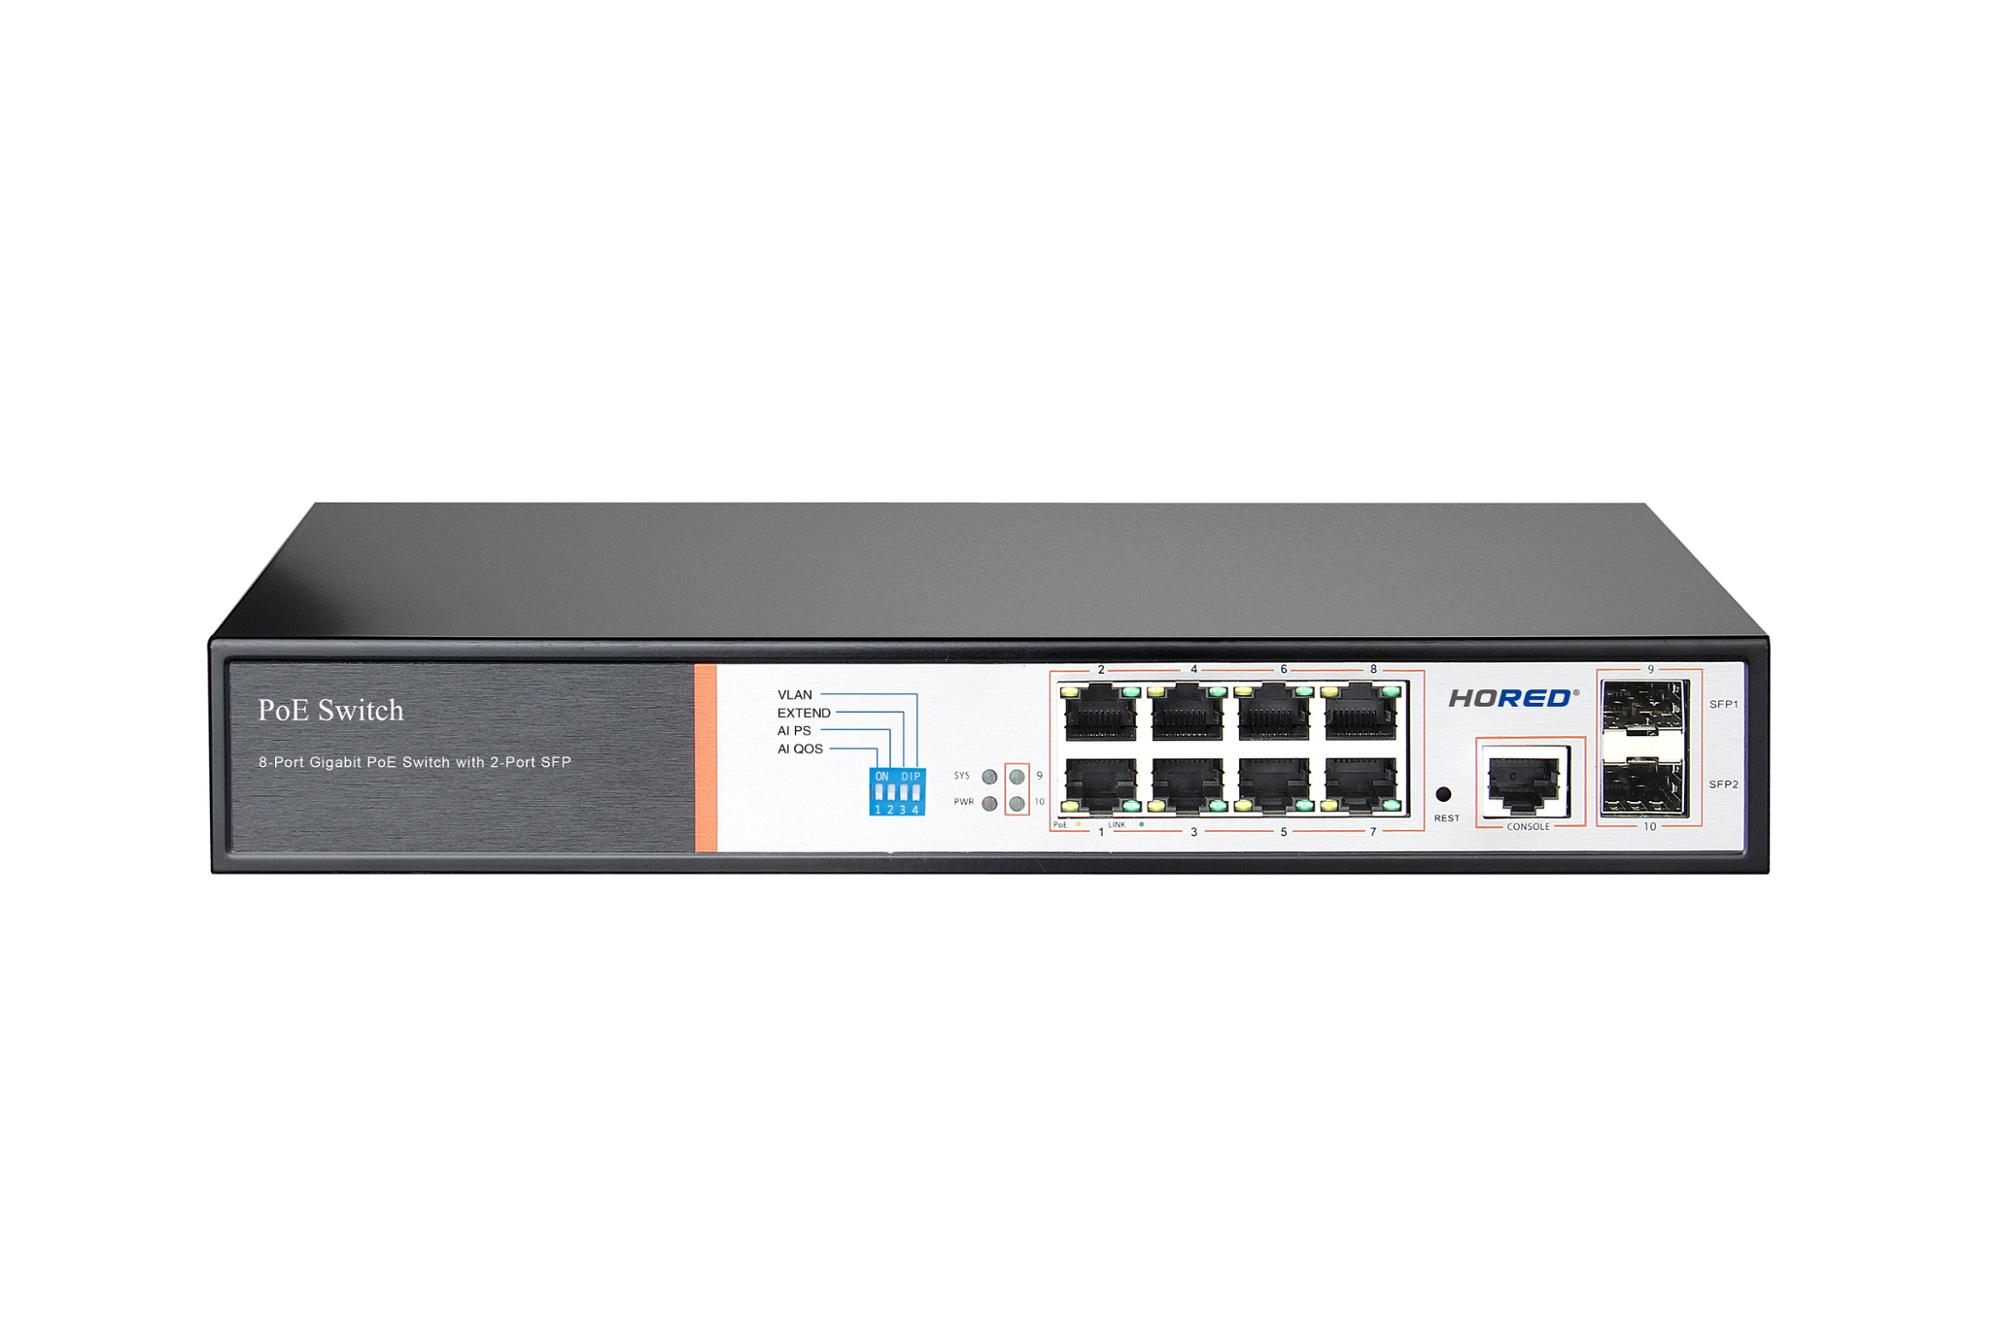 150W Vlan 250 Meters 2 SFP Port Gigabit Ethernet Switch 8 Port Layer 2 PoE Switch For CCTV